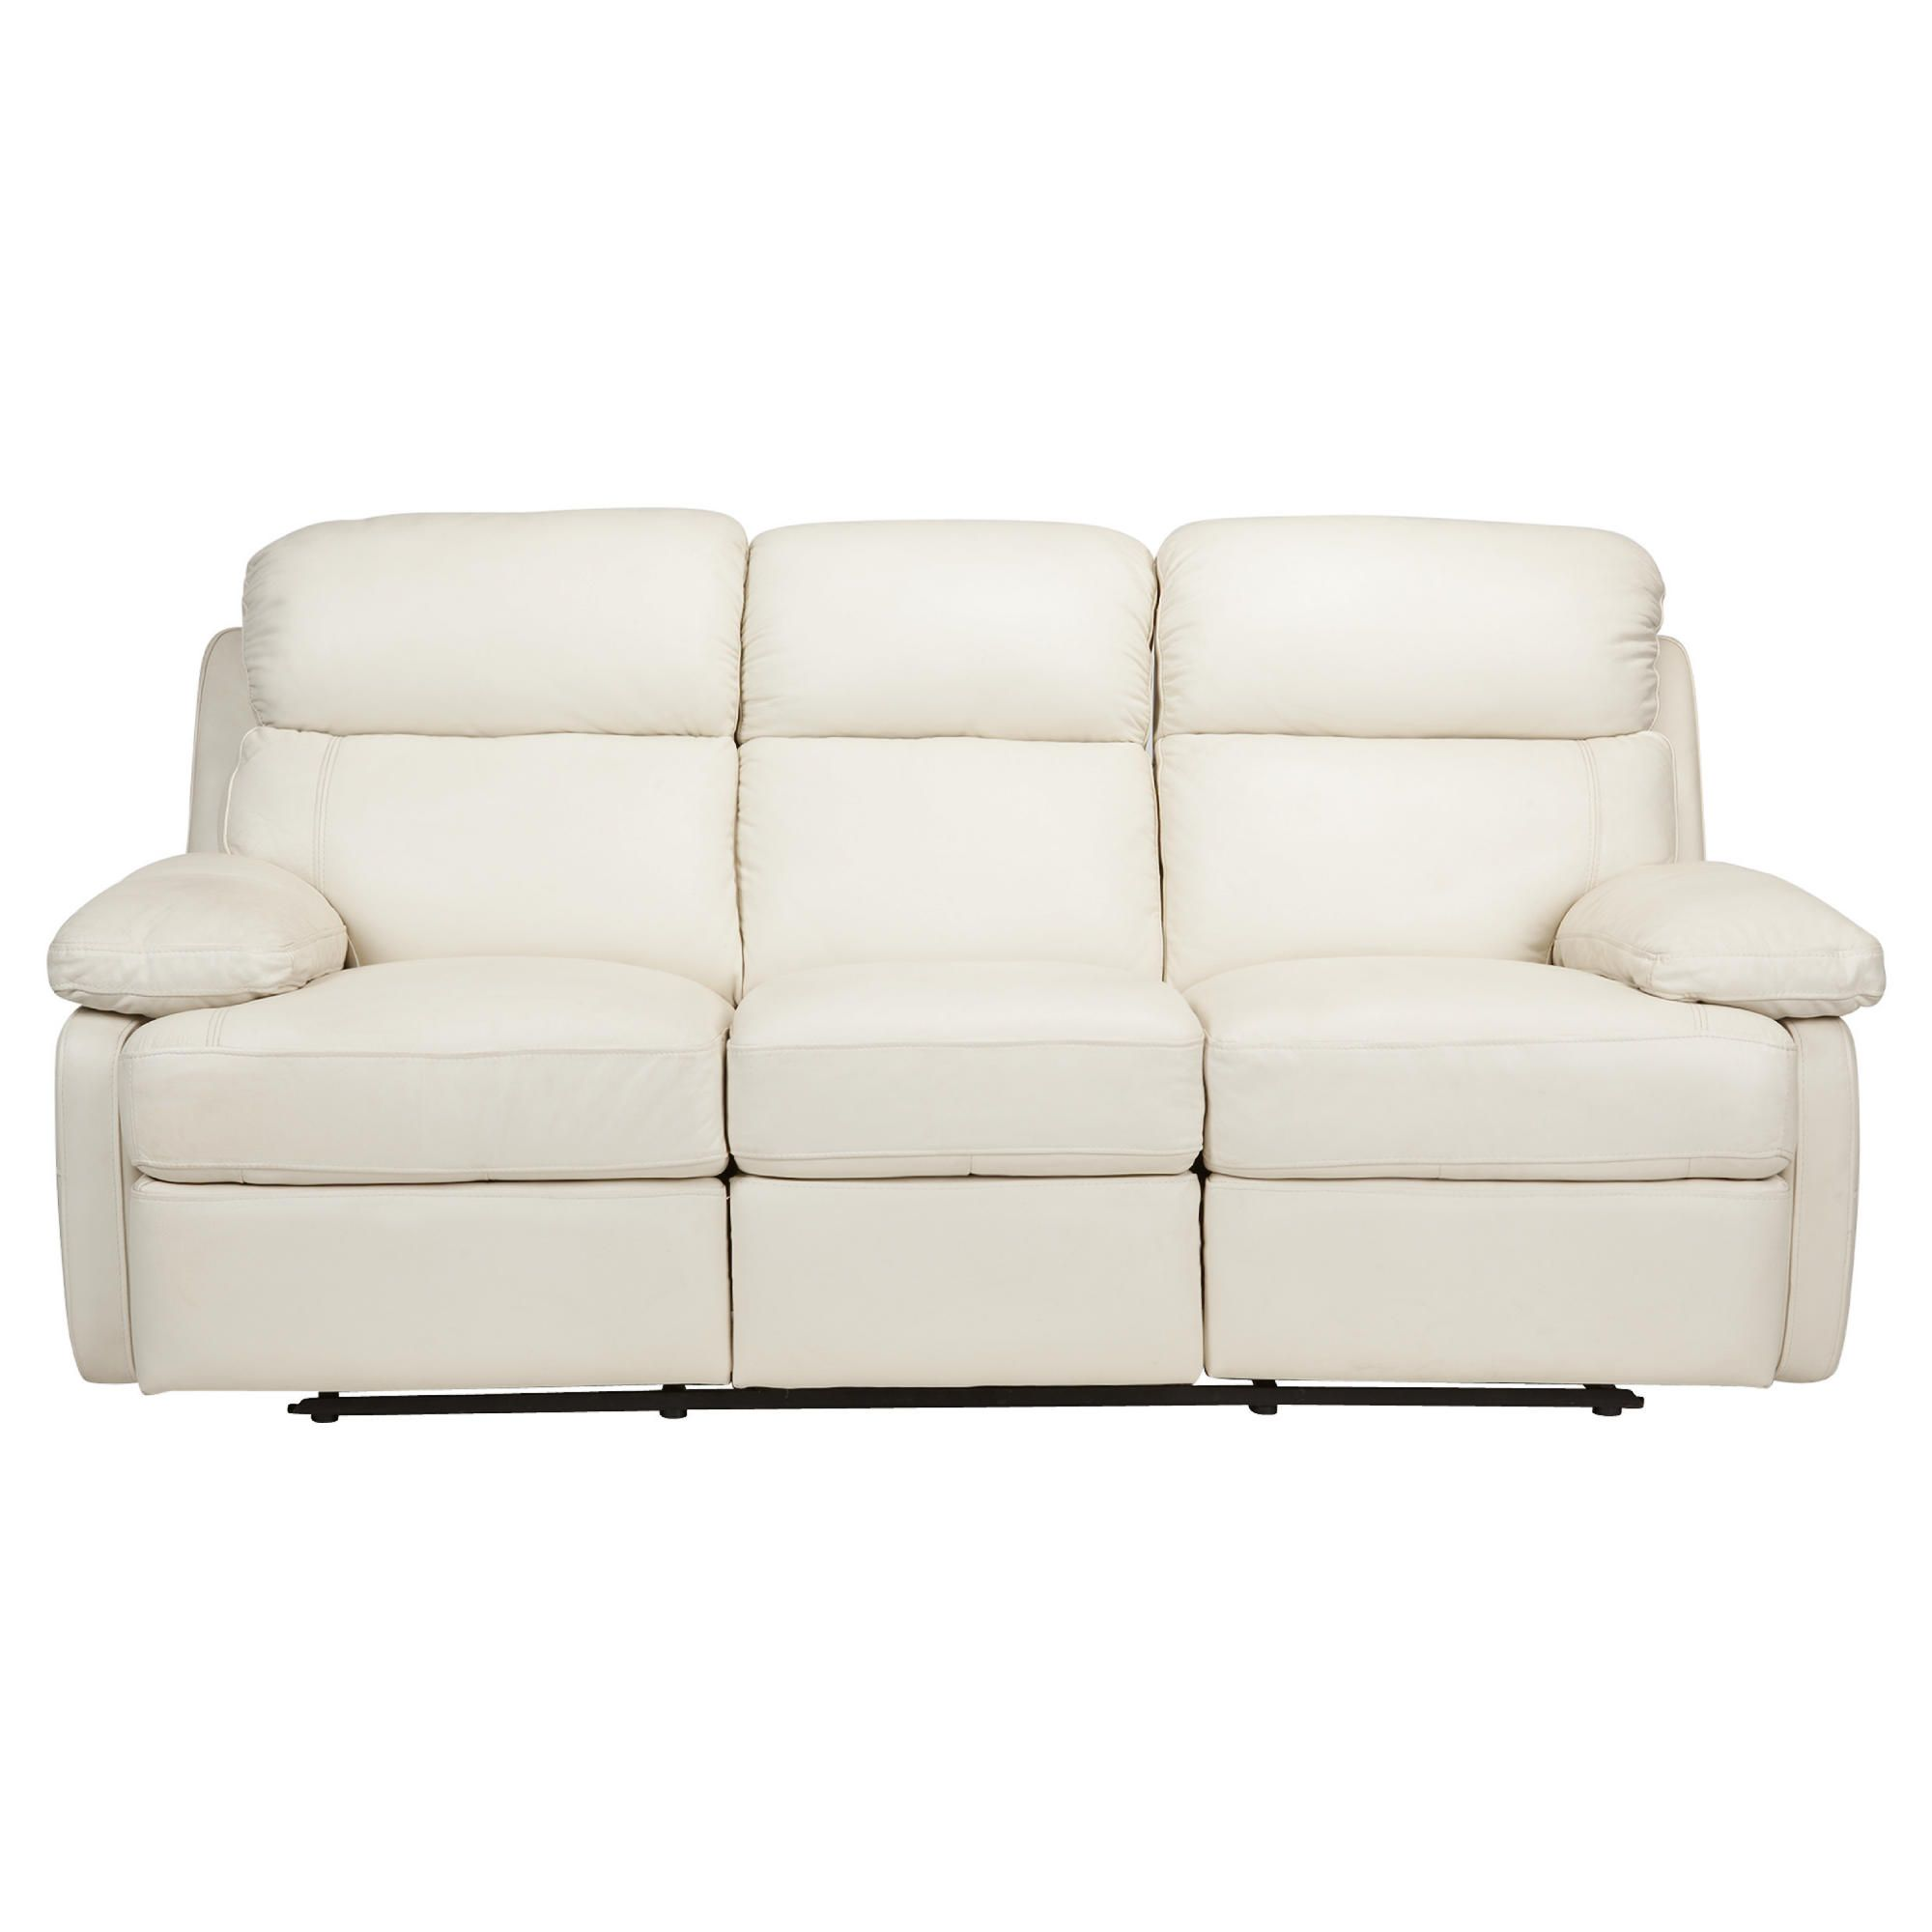 Cordova Leather Large Recliner Sofa Ivory at Tesco Direct